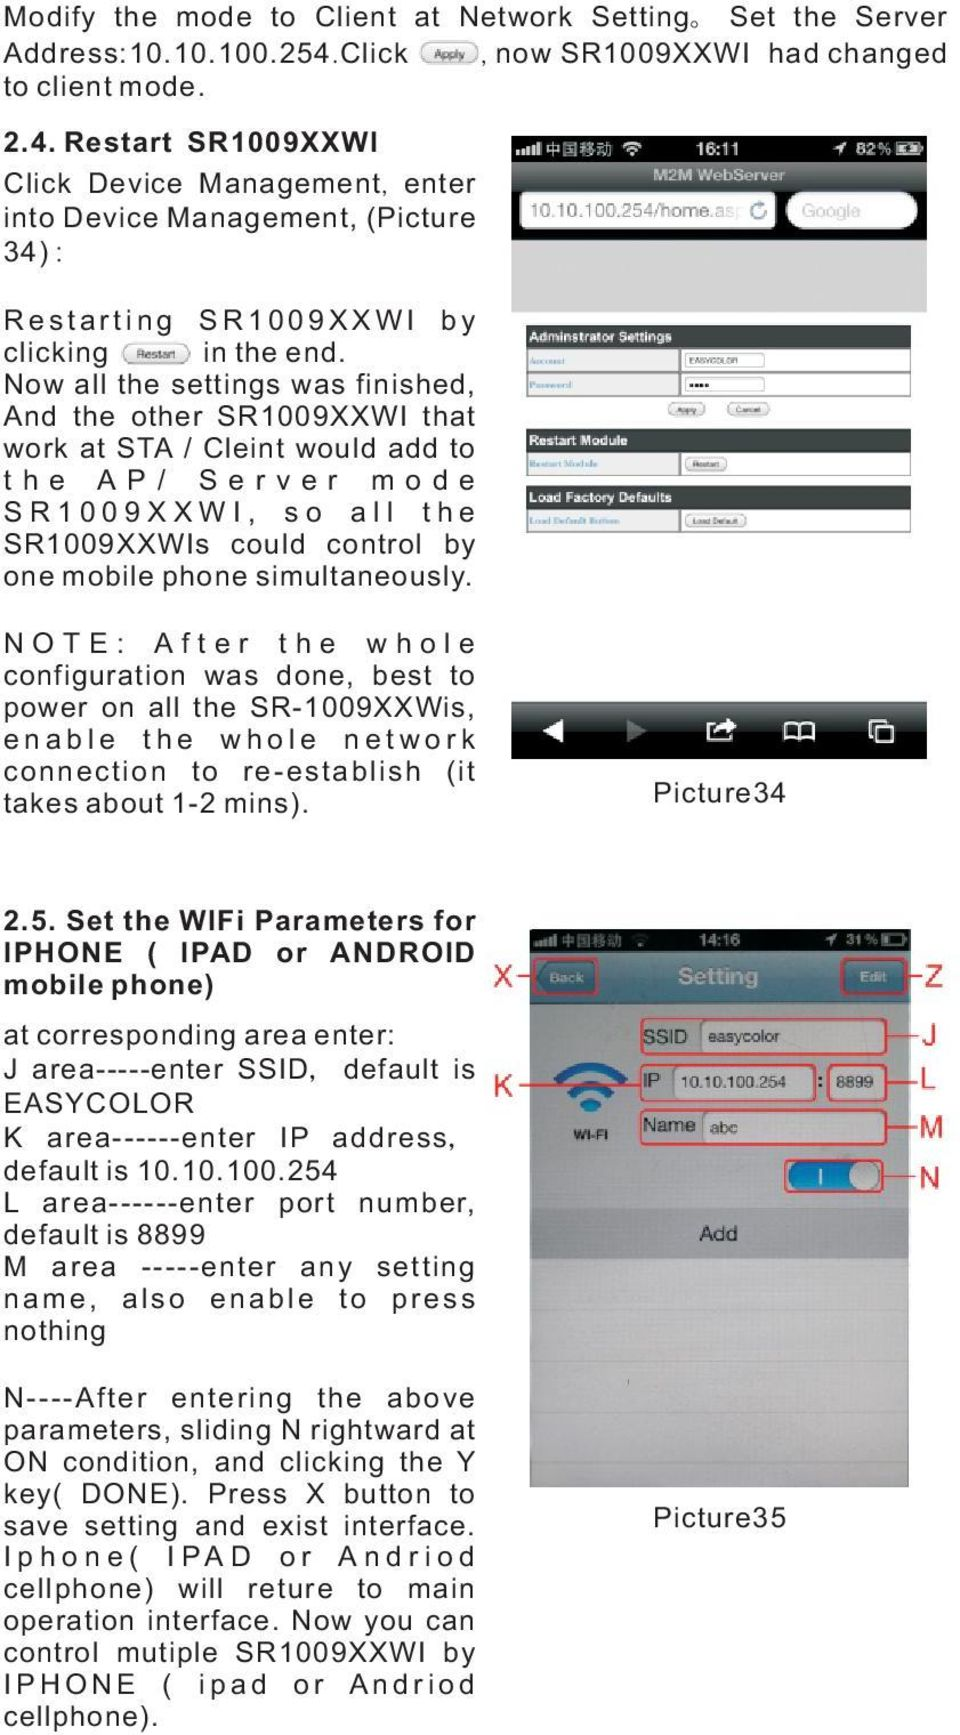 Multiple connections for SR1009XXWI& Iphone (Ipad or Android